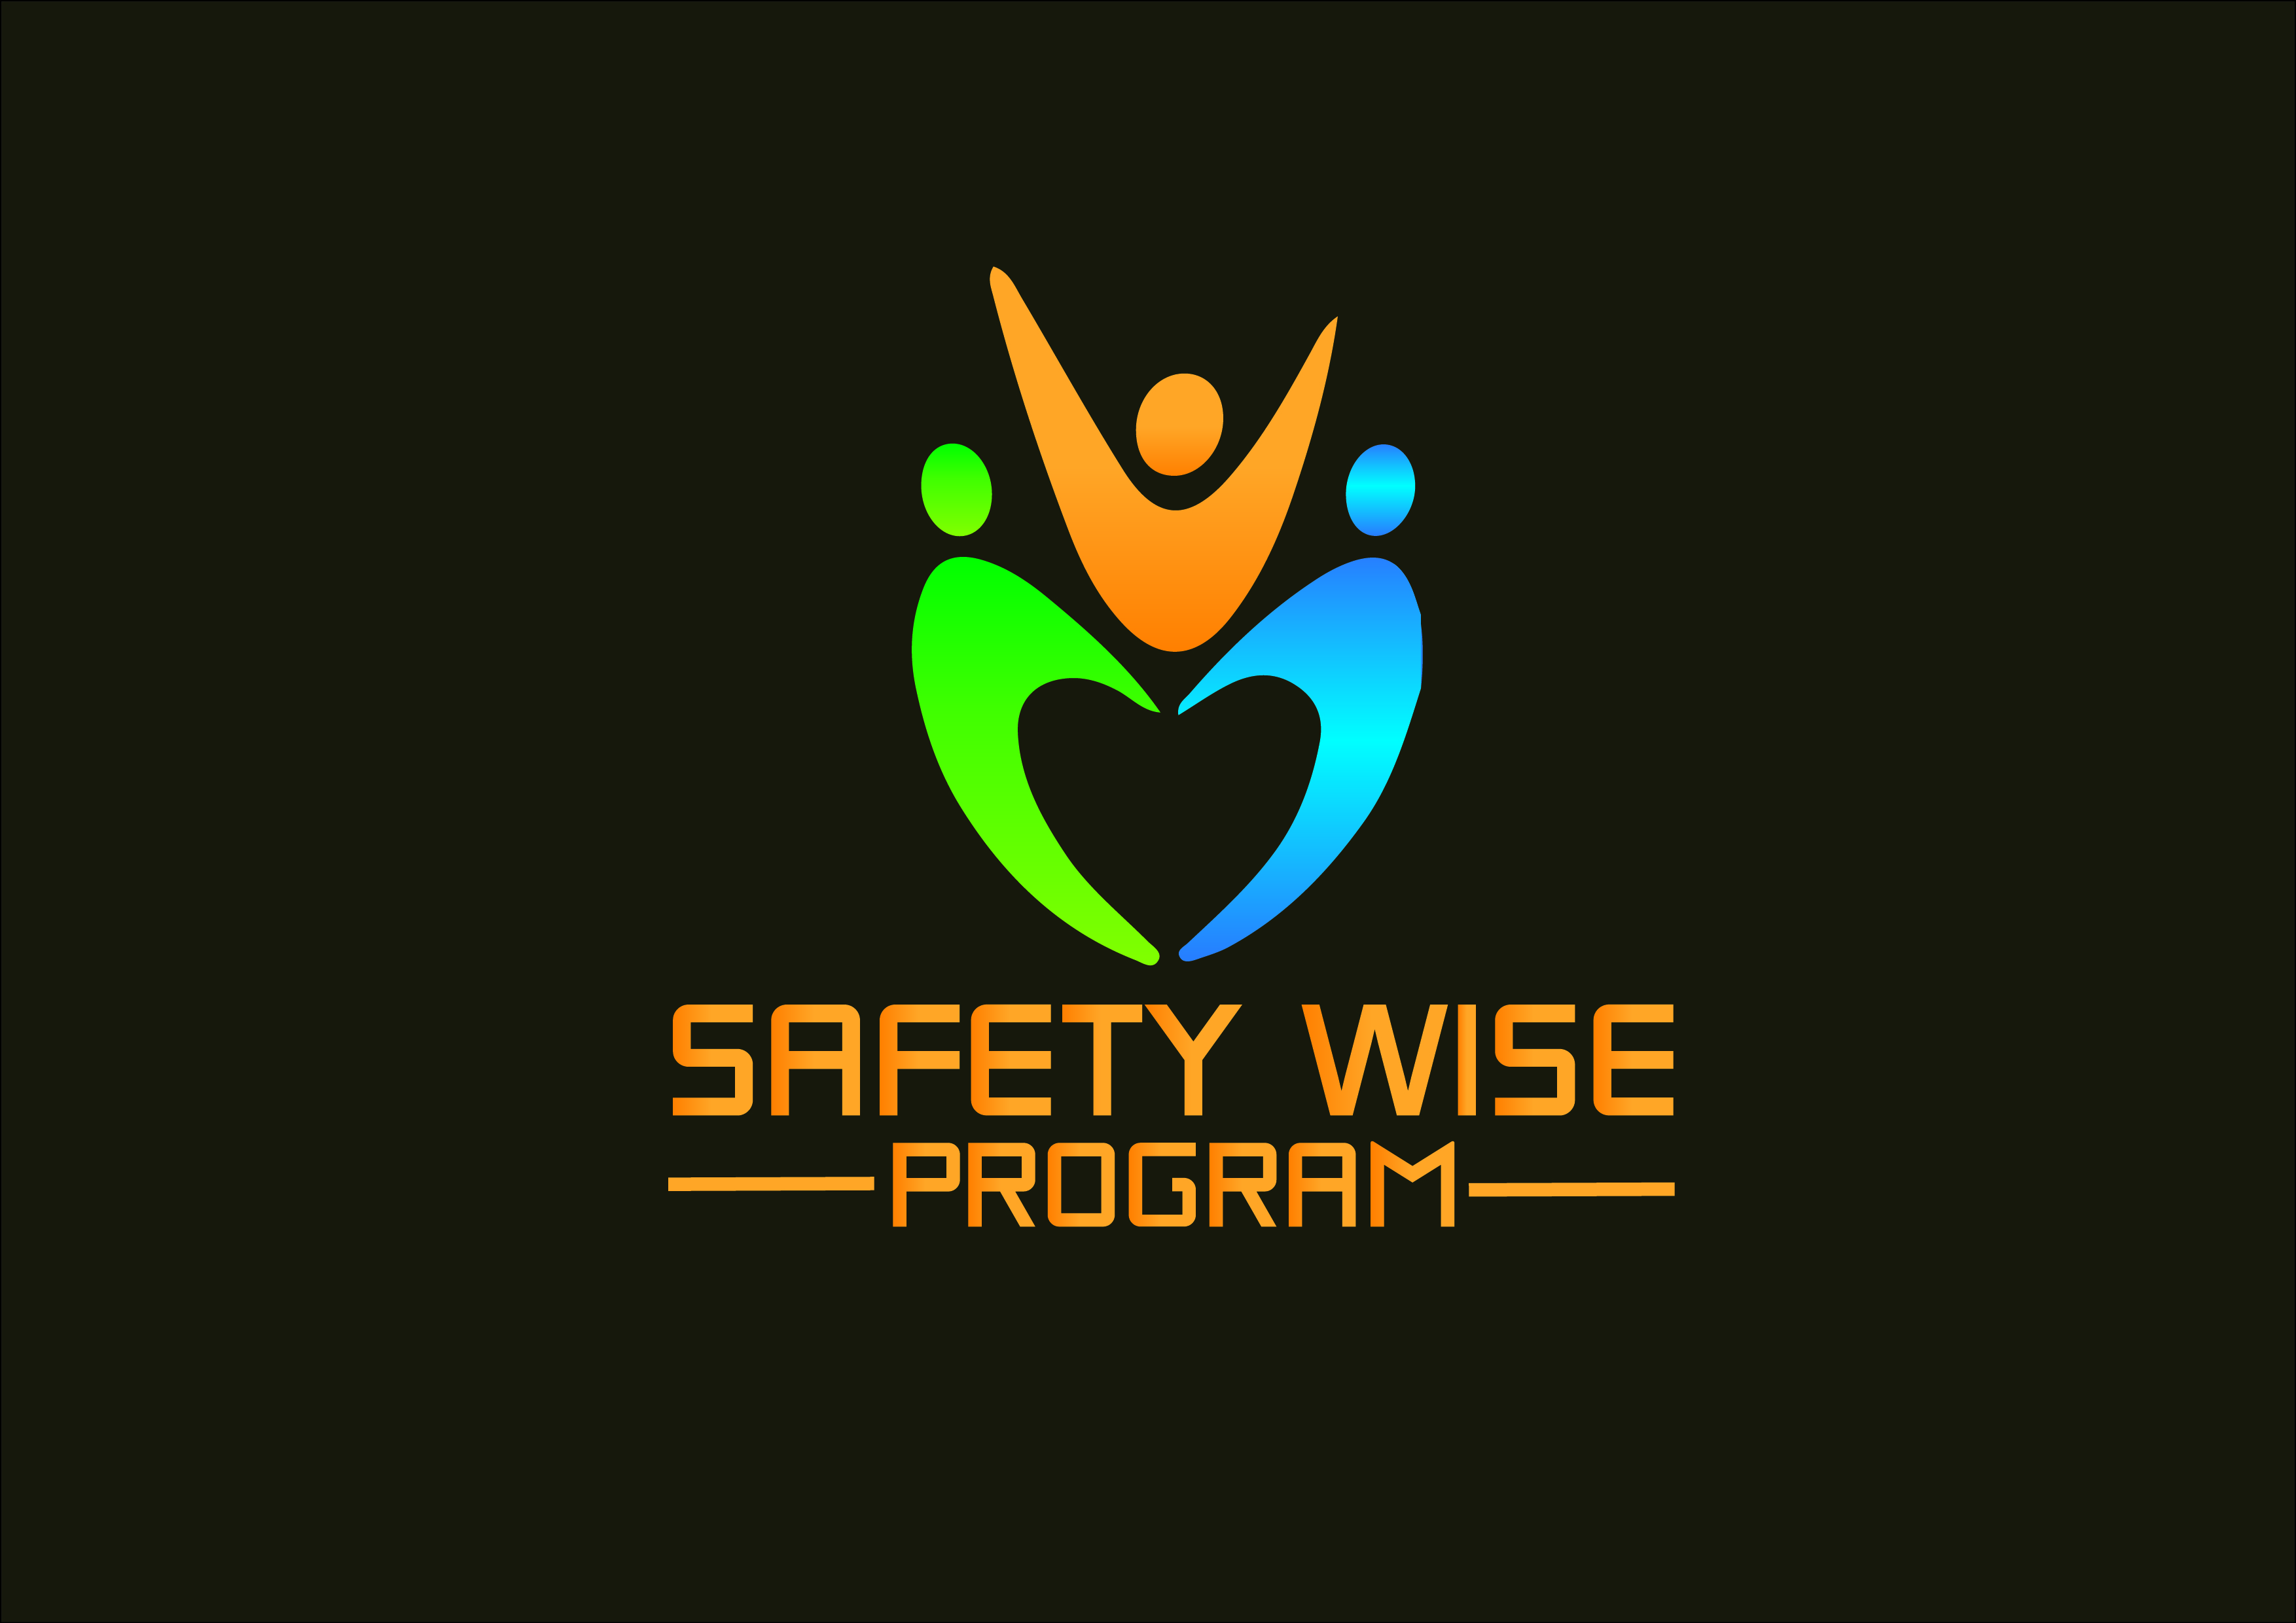 Logo Design by Anum Aamir - Entry No. 92 in the Logo Design Contest New Logo Design for Safety Wise Program.